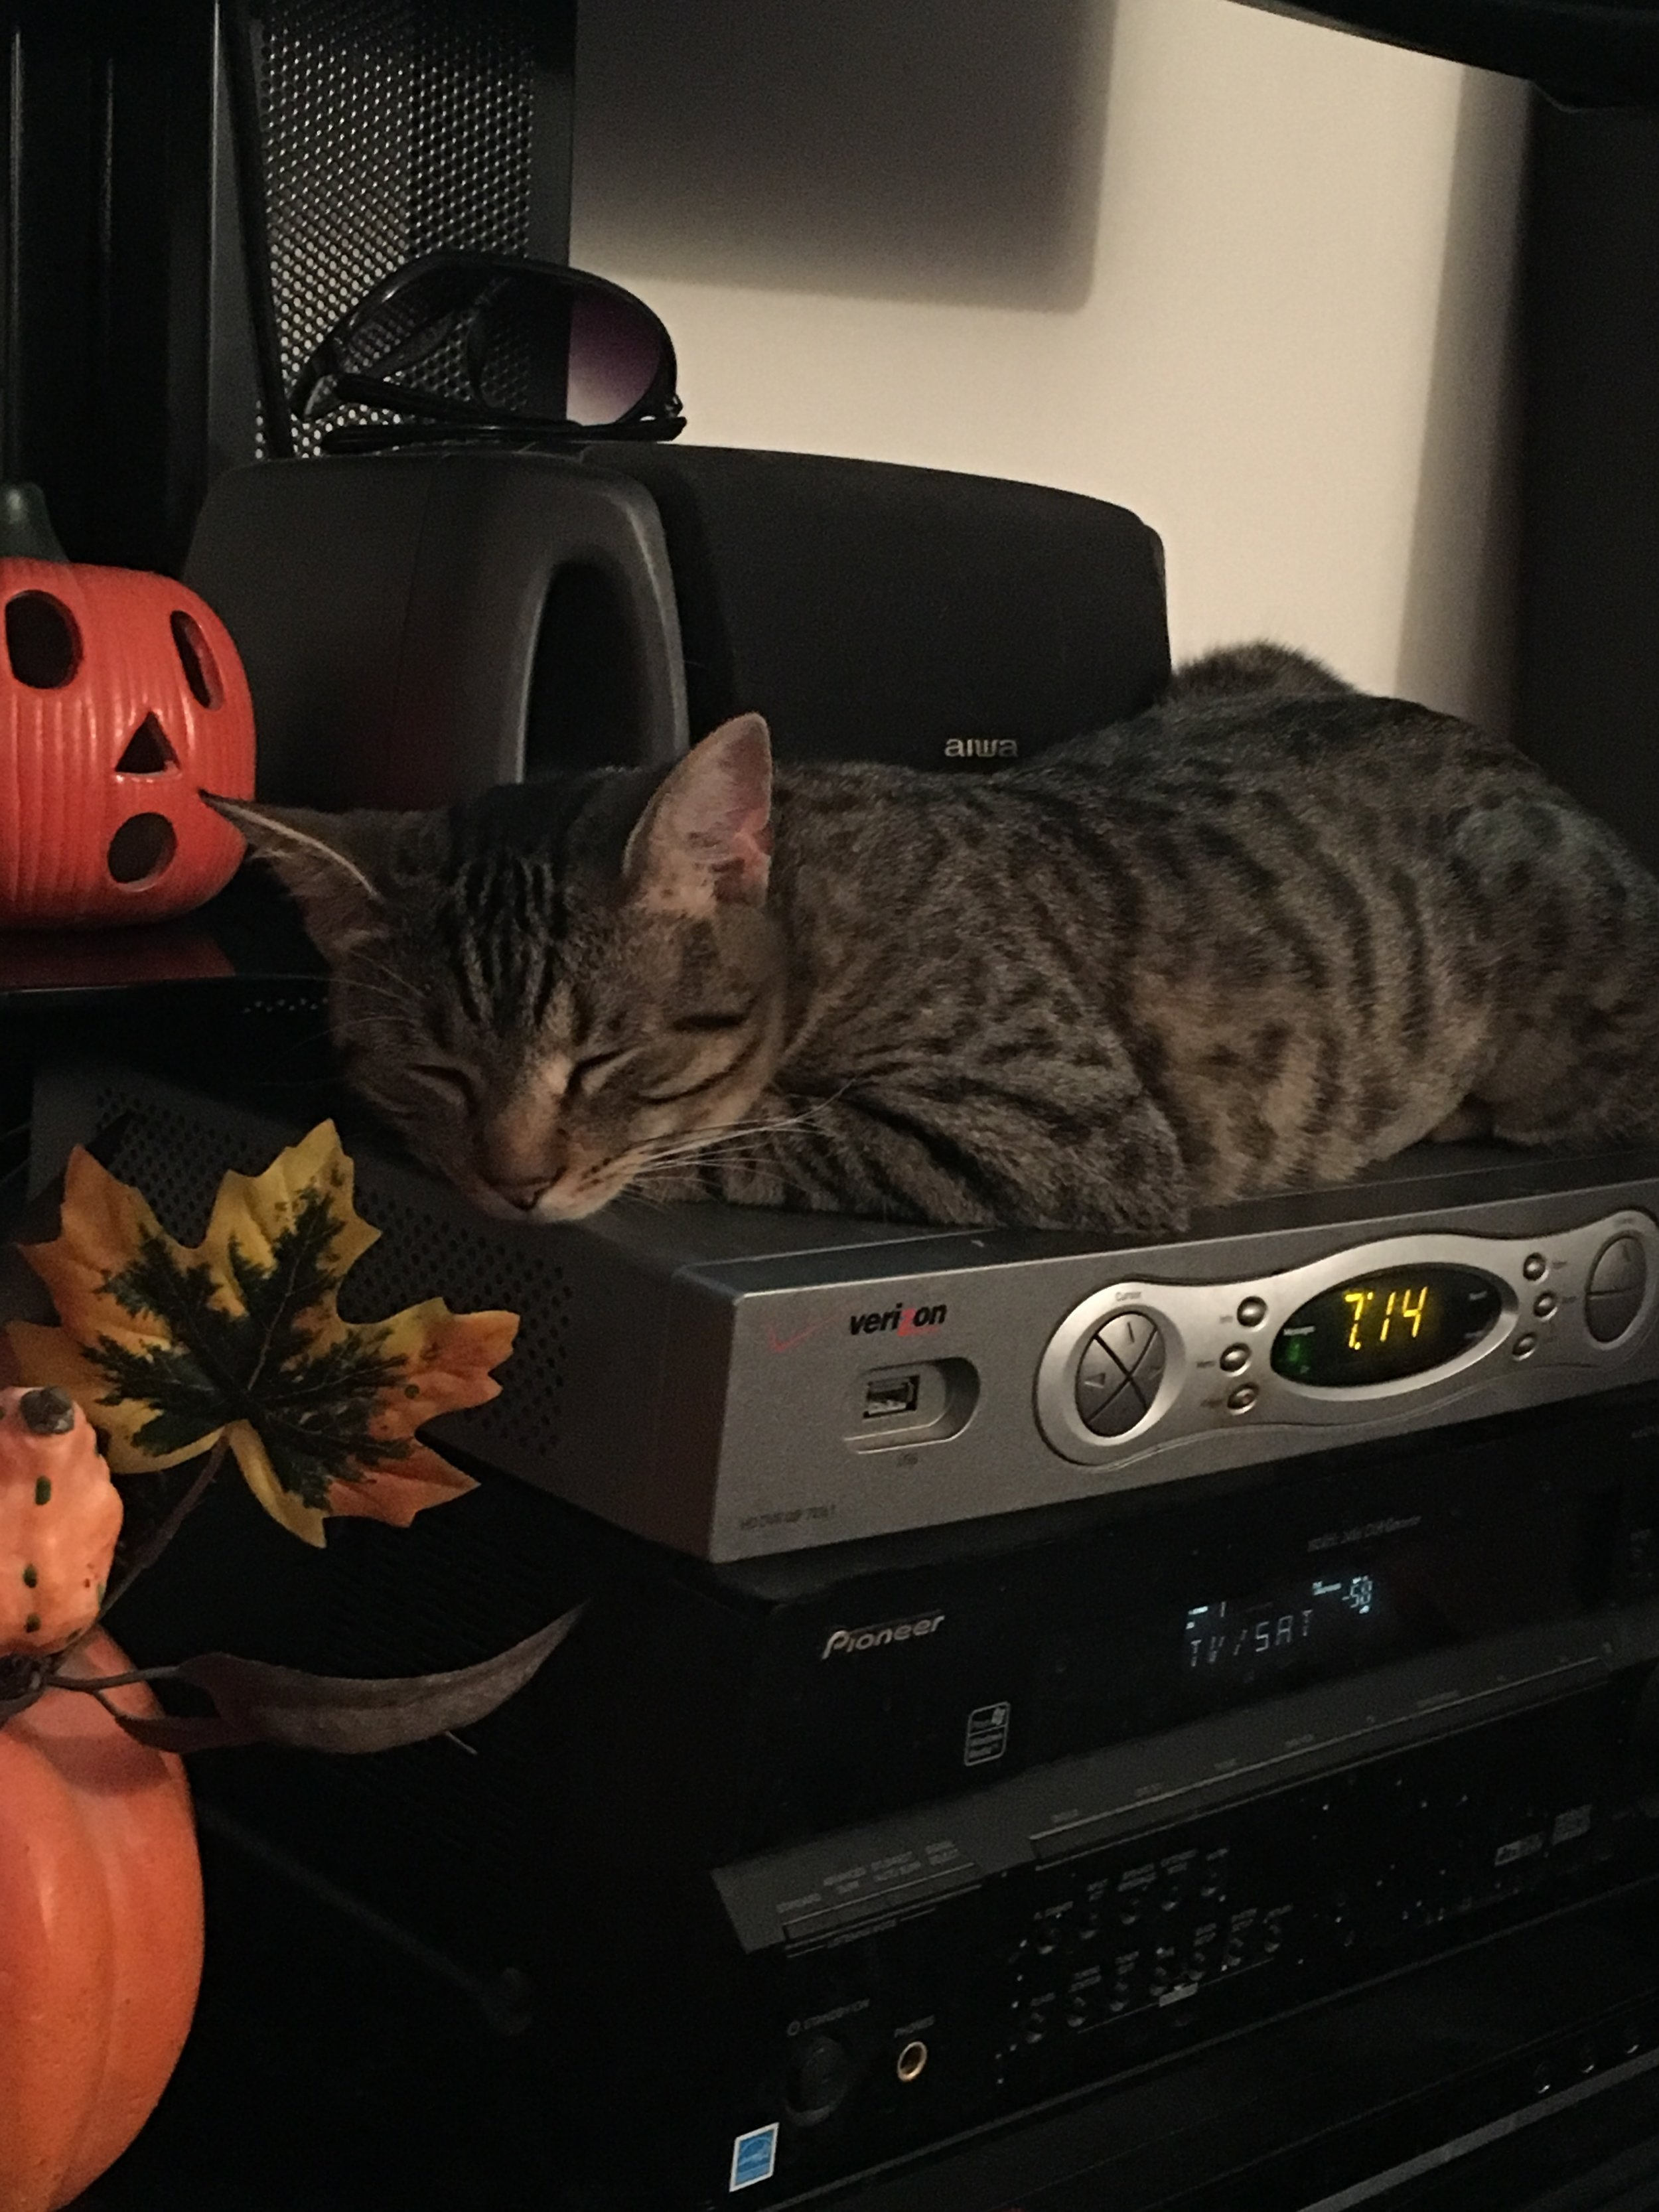 Her cat sister, meanwhile, made an adorable decoration.